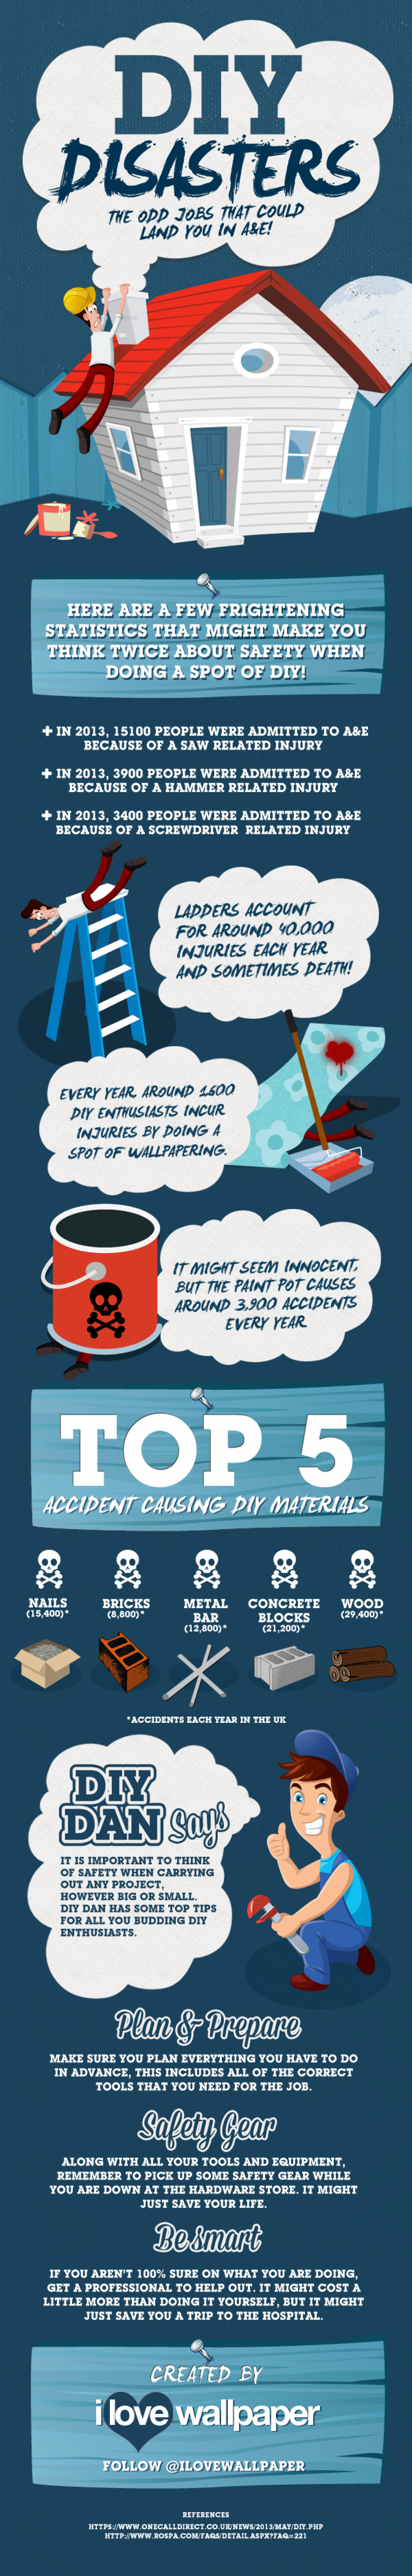 DIY Disasters - The Odd Jobs That Could Land You In A&E  Infographic